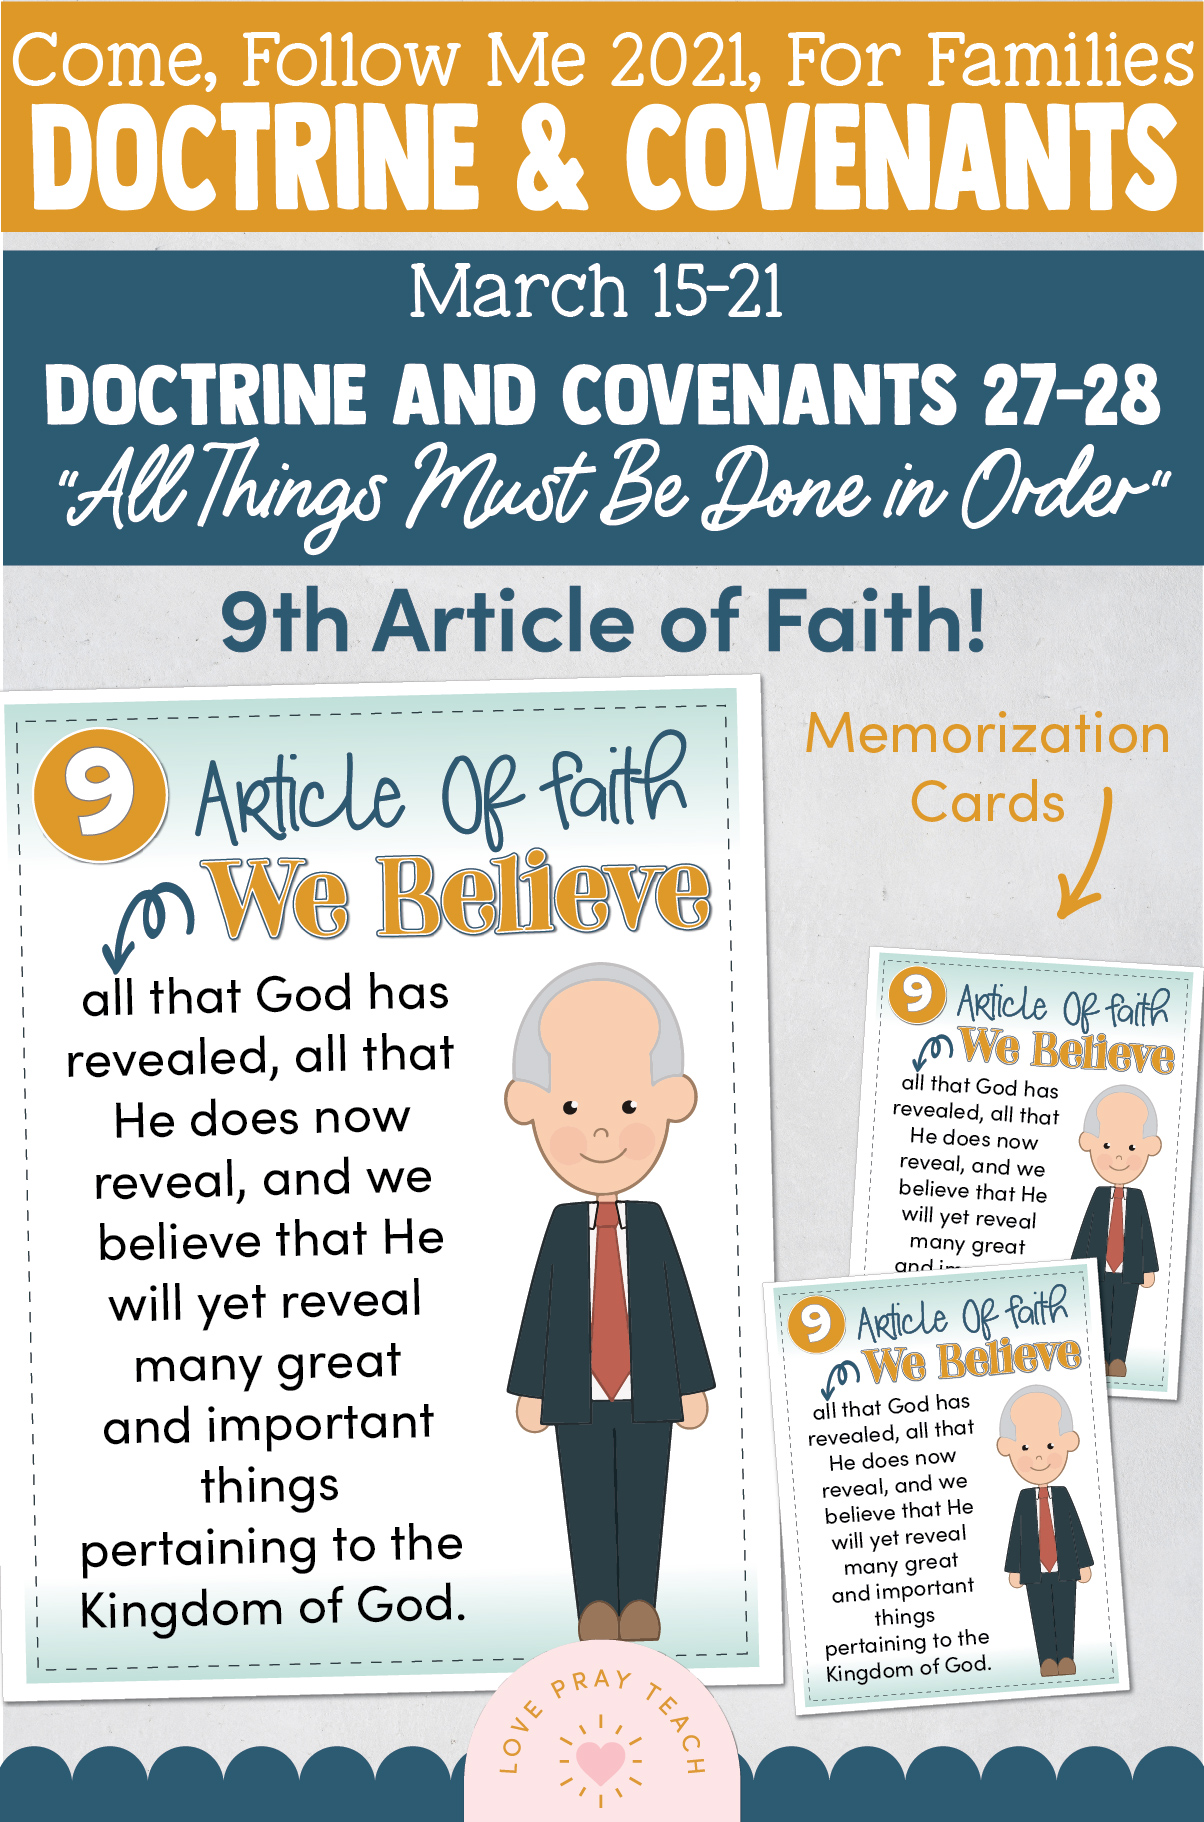 """Come, Follow Me—For Individuals and Families: Doctrine And Covenants 2021, March Week 3:March 15-21, Doctrine and Covenants 27–28, """"All Things Must Be Done in Order"""""""